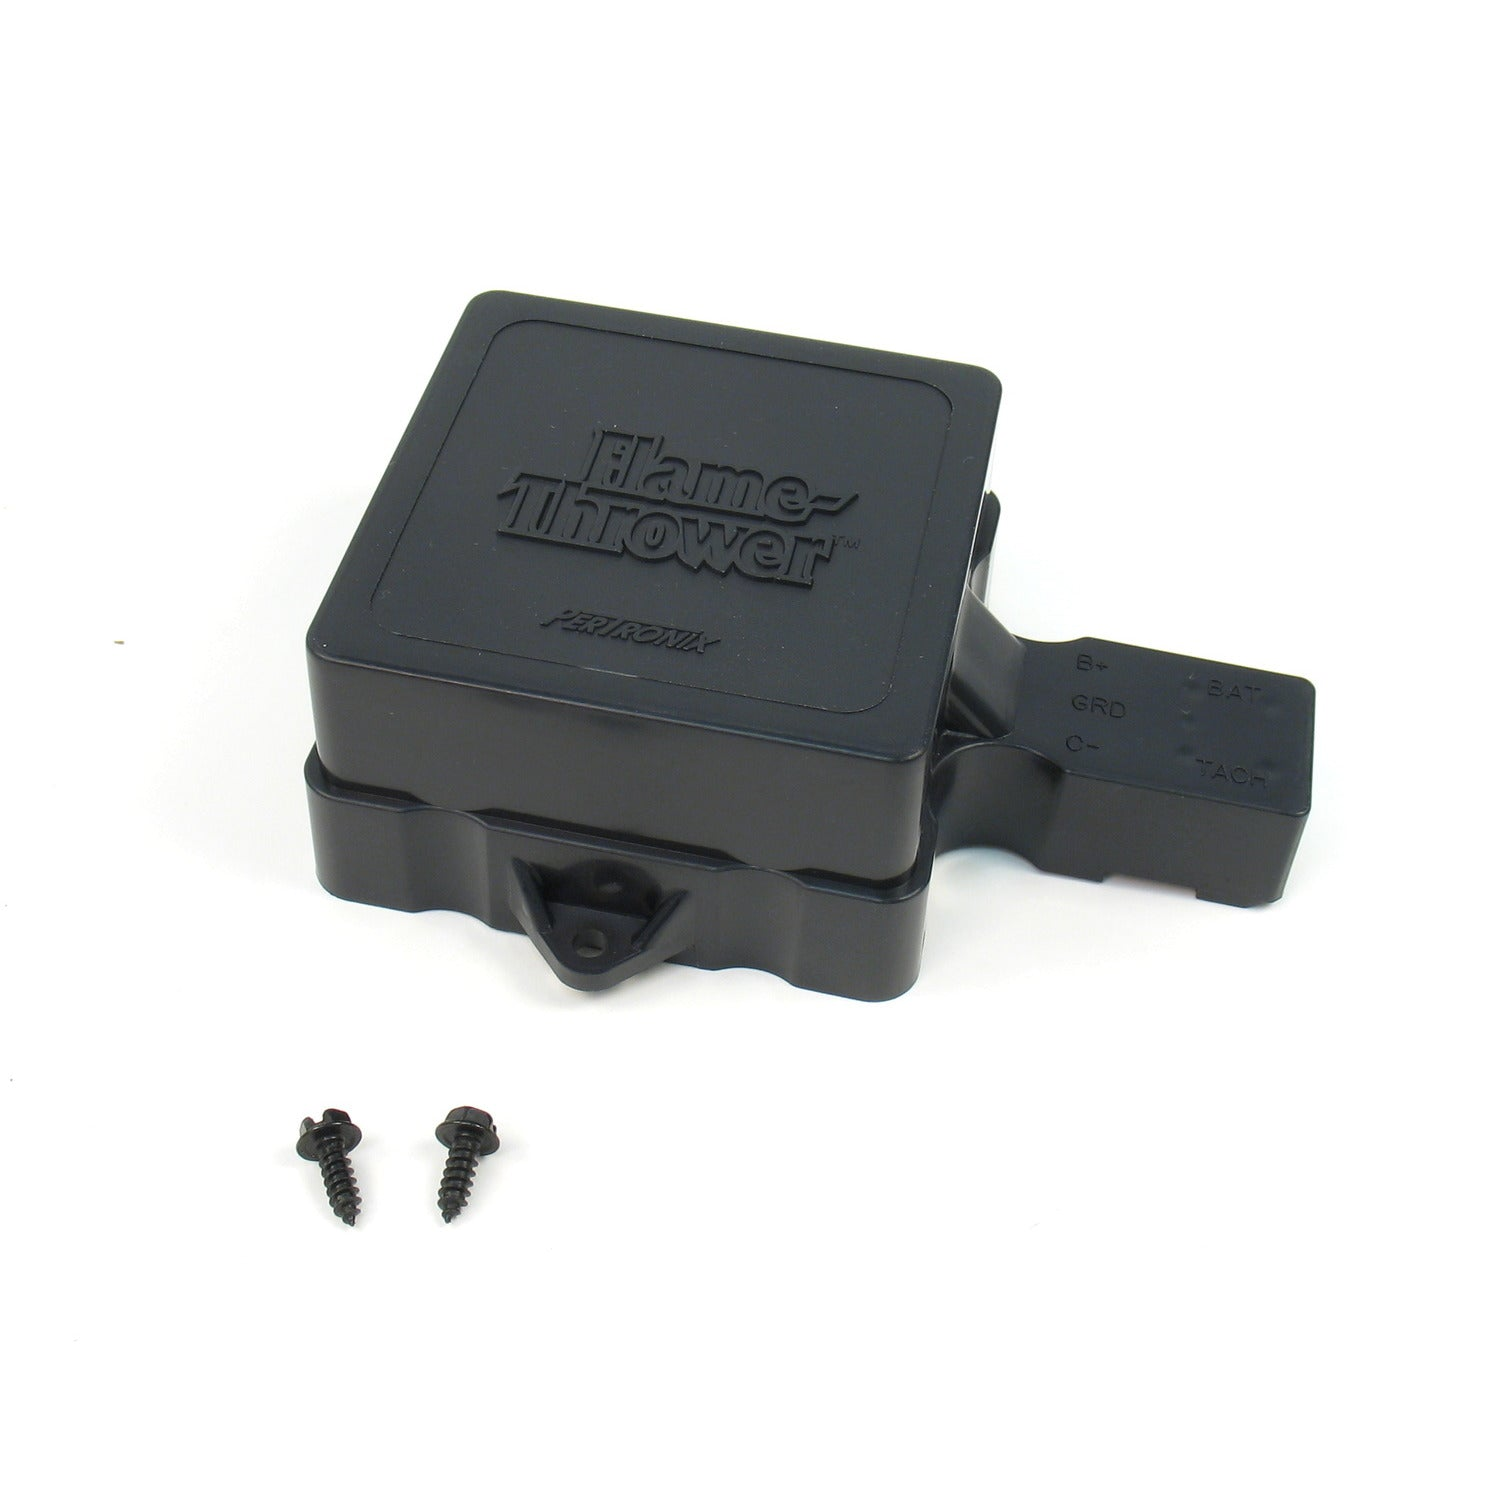 PerTronix D9000 Flame-Thrower HEI Distributor Flame-Thrower Dust Cover